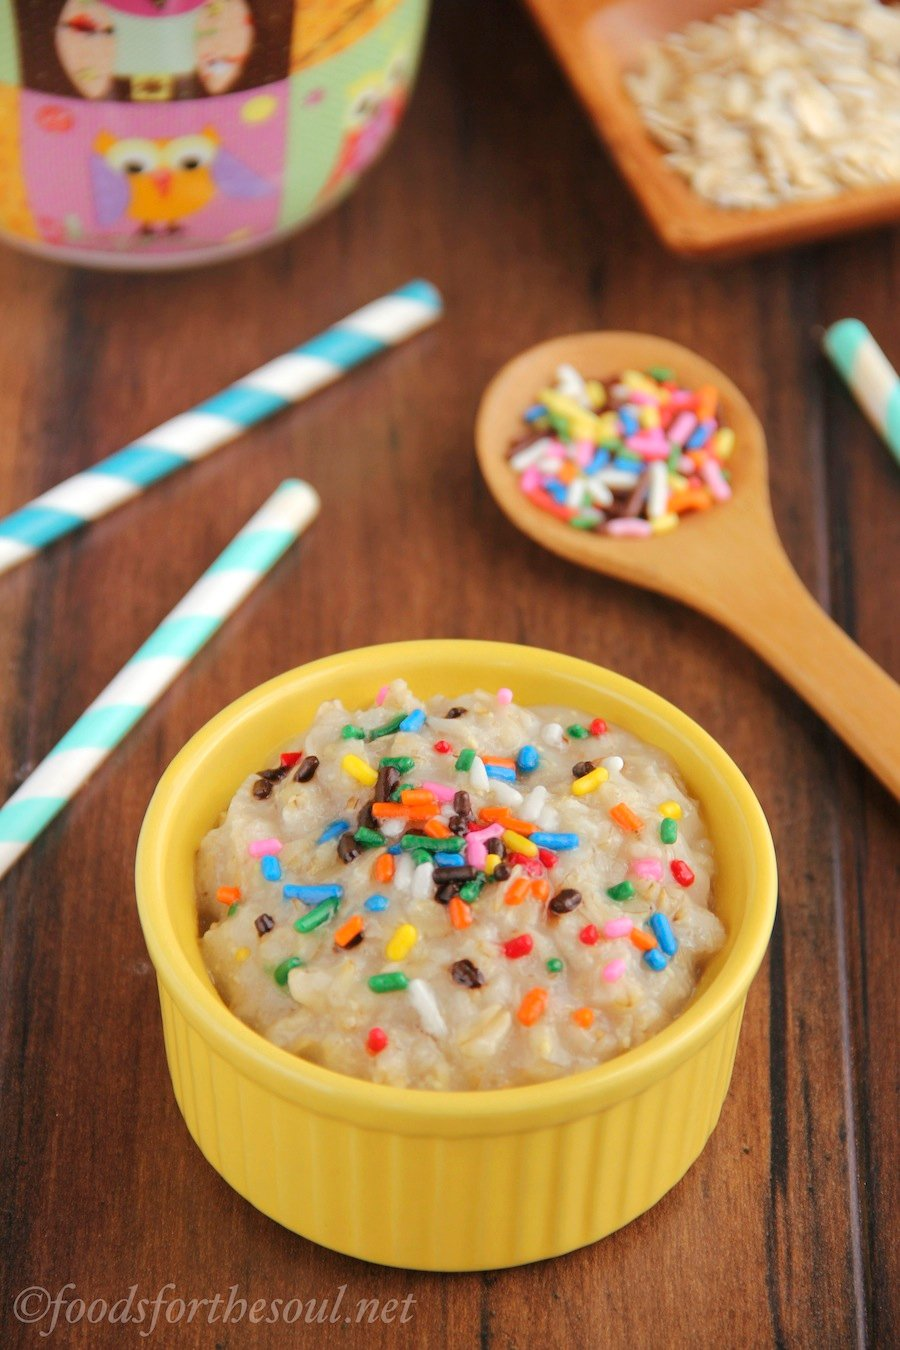 This healthy oatmeal tastes exactly like funfetti cake batter but has 9 grams of protein & under 175 calories!